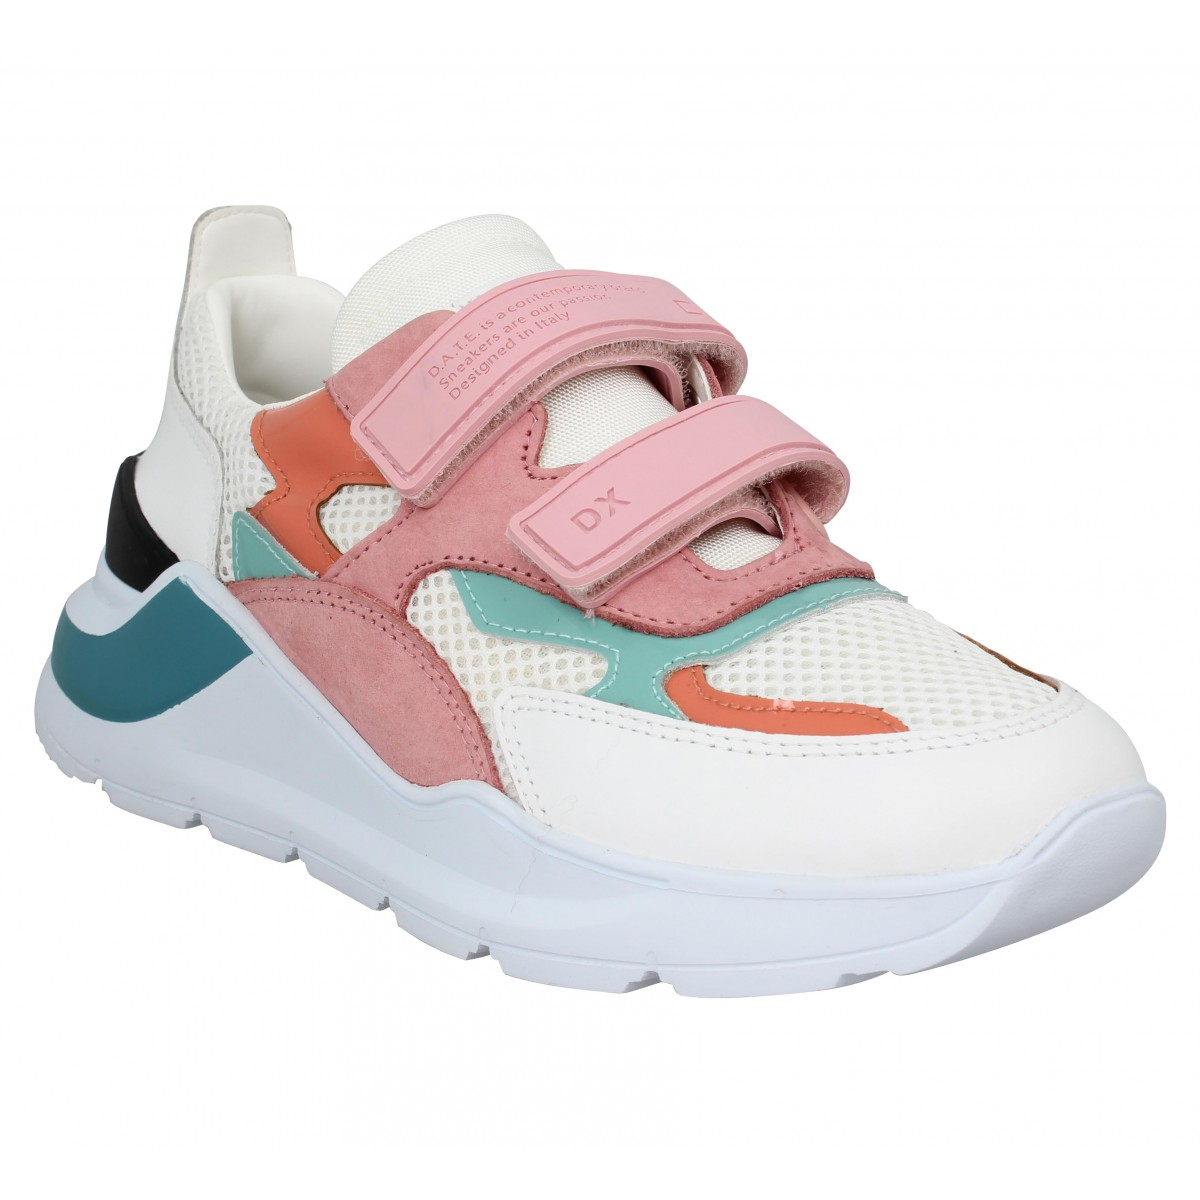 Baskets DATE SNEAKERS Fuga Strap cuir toile Femme Blanc Rose